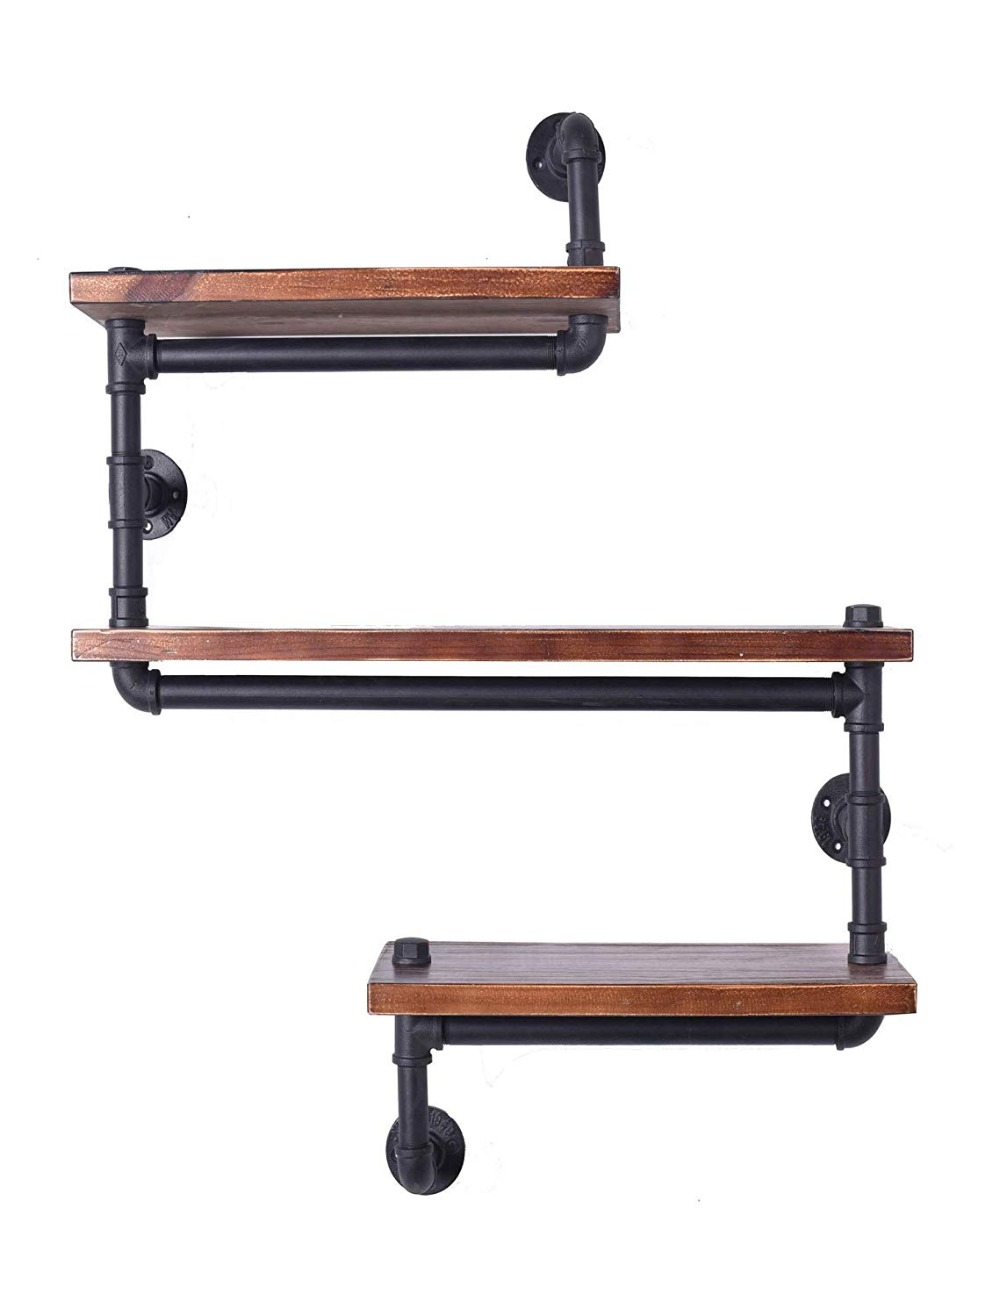 Floating Wall Shelves Industrial Rustic Iron Pipe Shelf 3 Tiers Wooden Board Restaurant Kitchen Bathroom Decorative Wall Shelf